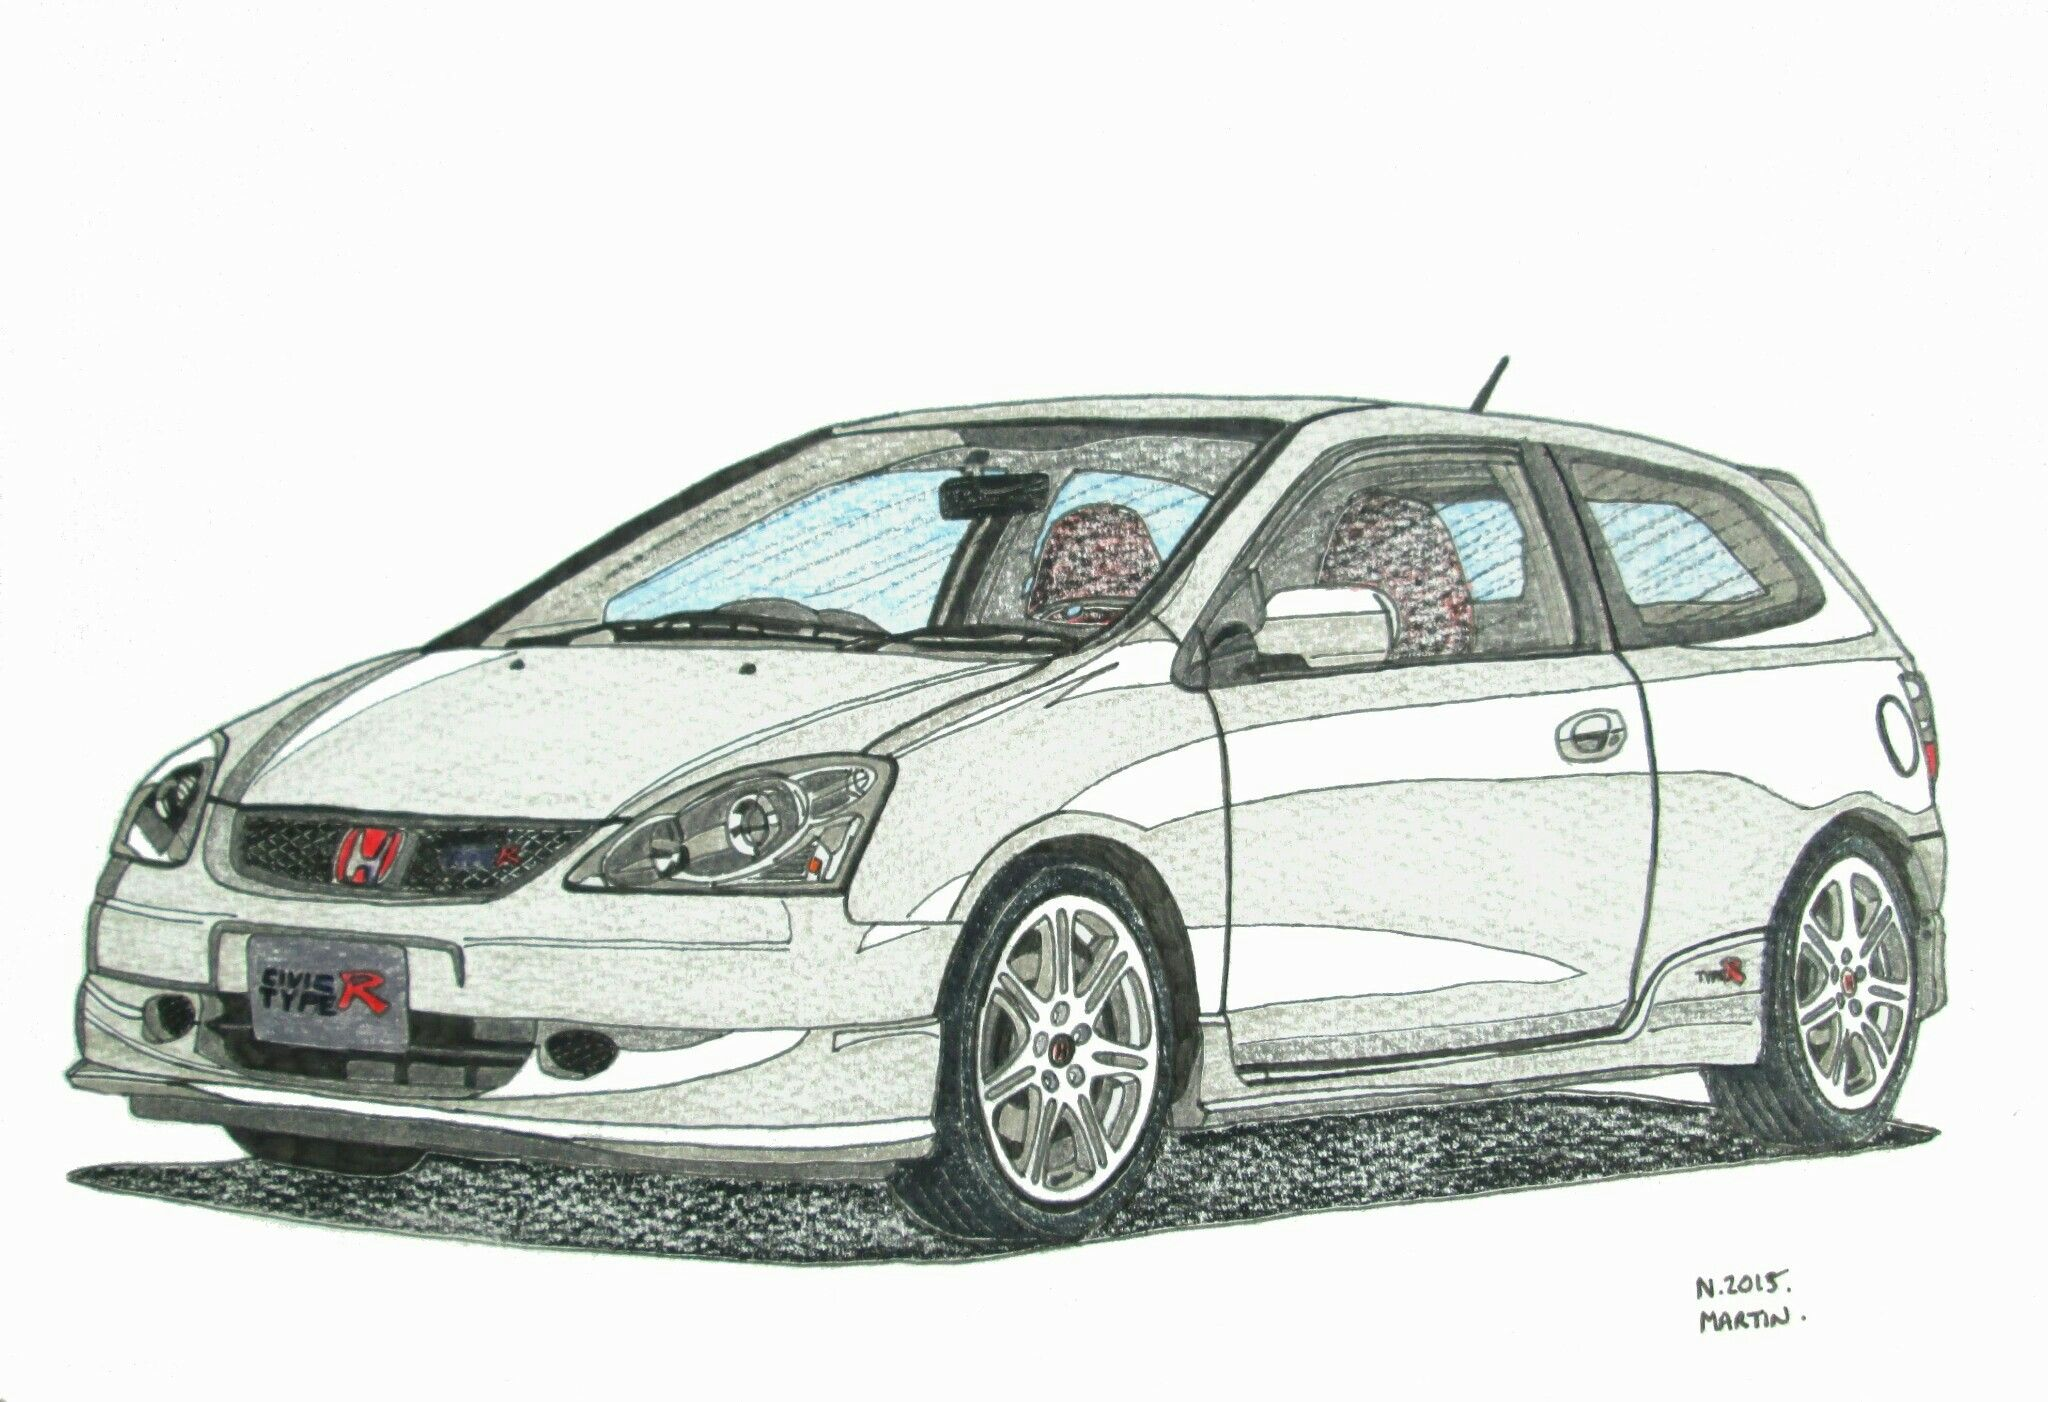 Honda Civic Type R Ep3 2nd Generation Drawing My Drawing Of A Honda Civic Type R Using Watercolour Pencils Honda Civic 2003 Honda Civic Honda Civic Type R